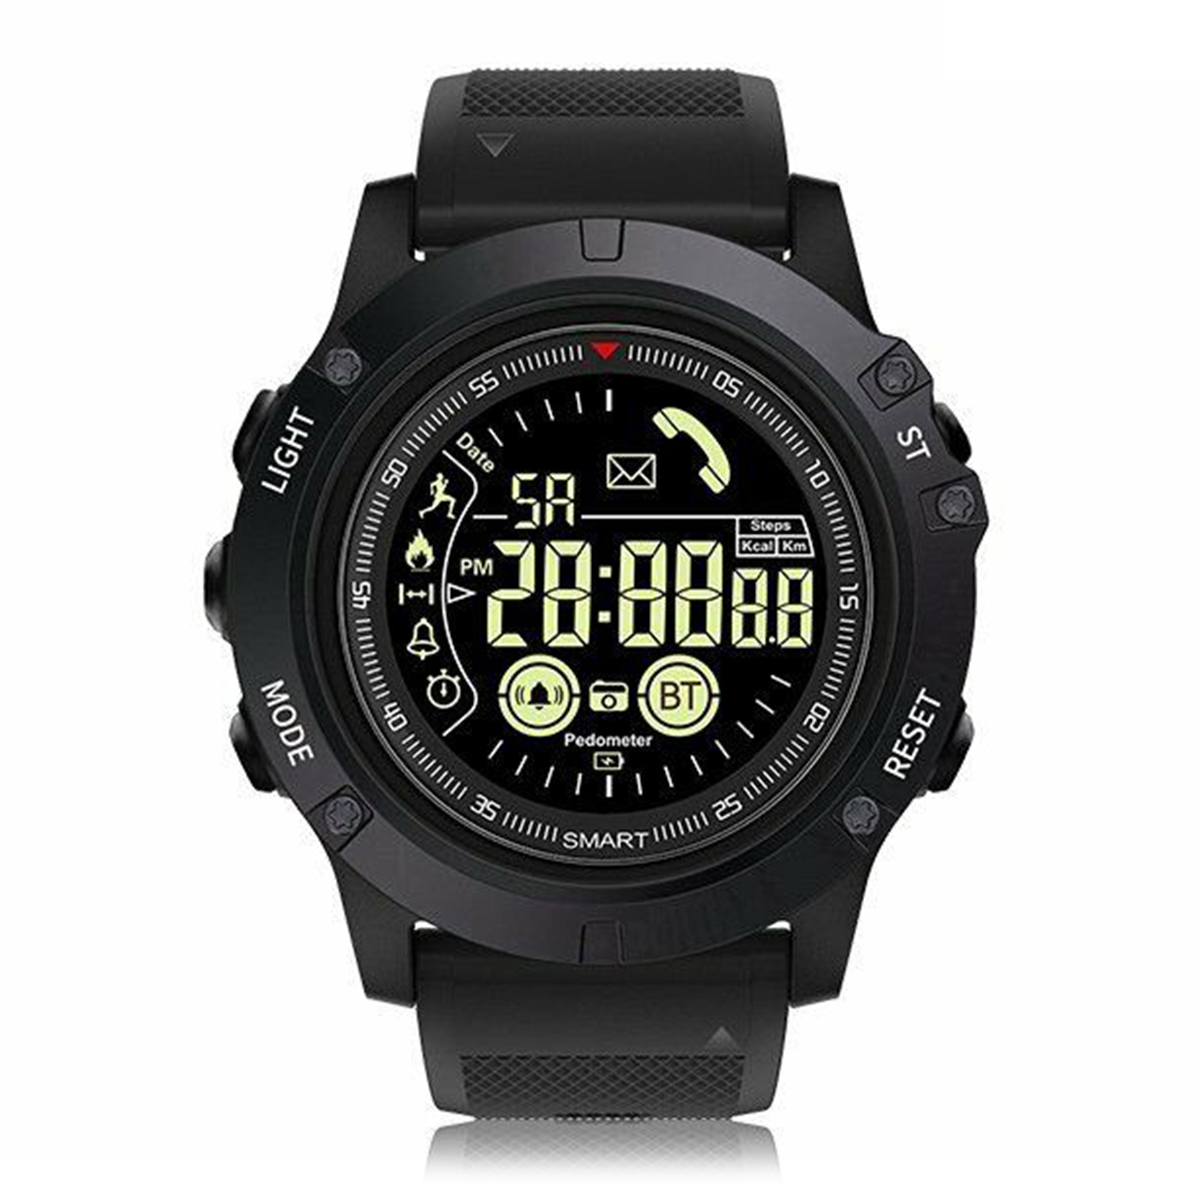 SOONHUA Outdoor Sports Waterproof Bluetooth Long Standby Smart Watch Tactical Military Wristband Pedometer With Luminous DialSOONHUA Outdoor Sports Waterproof Bluetooth Long Standby Smart Watch Tactical Military Wristband Pedometer With Luminous Dial